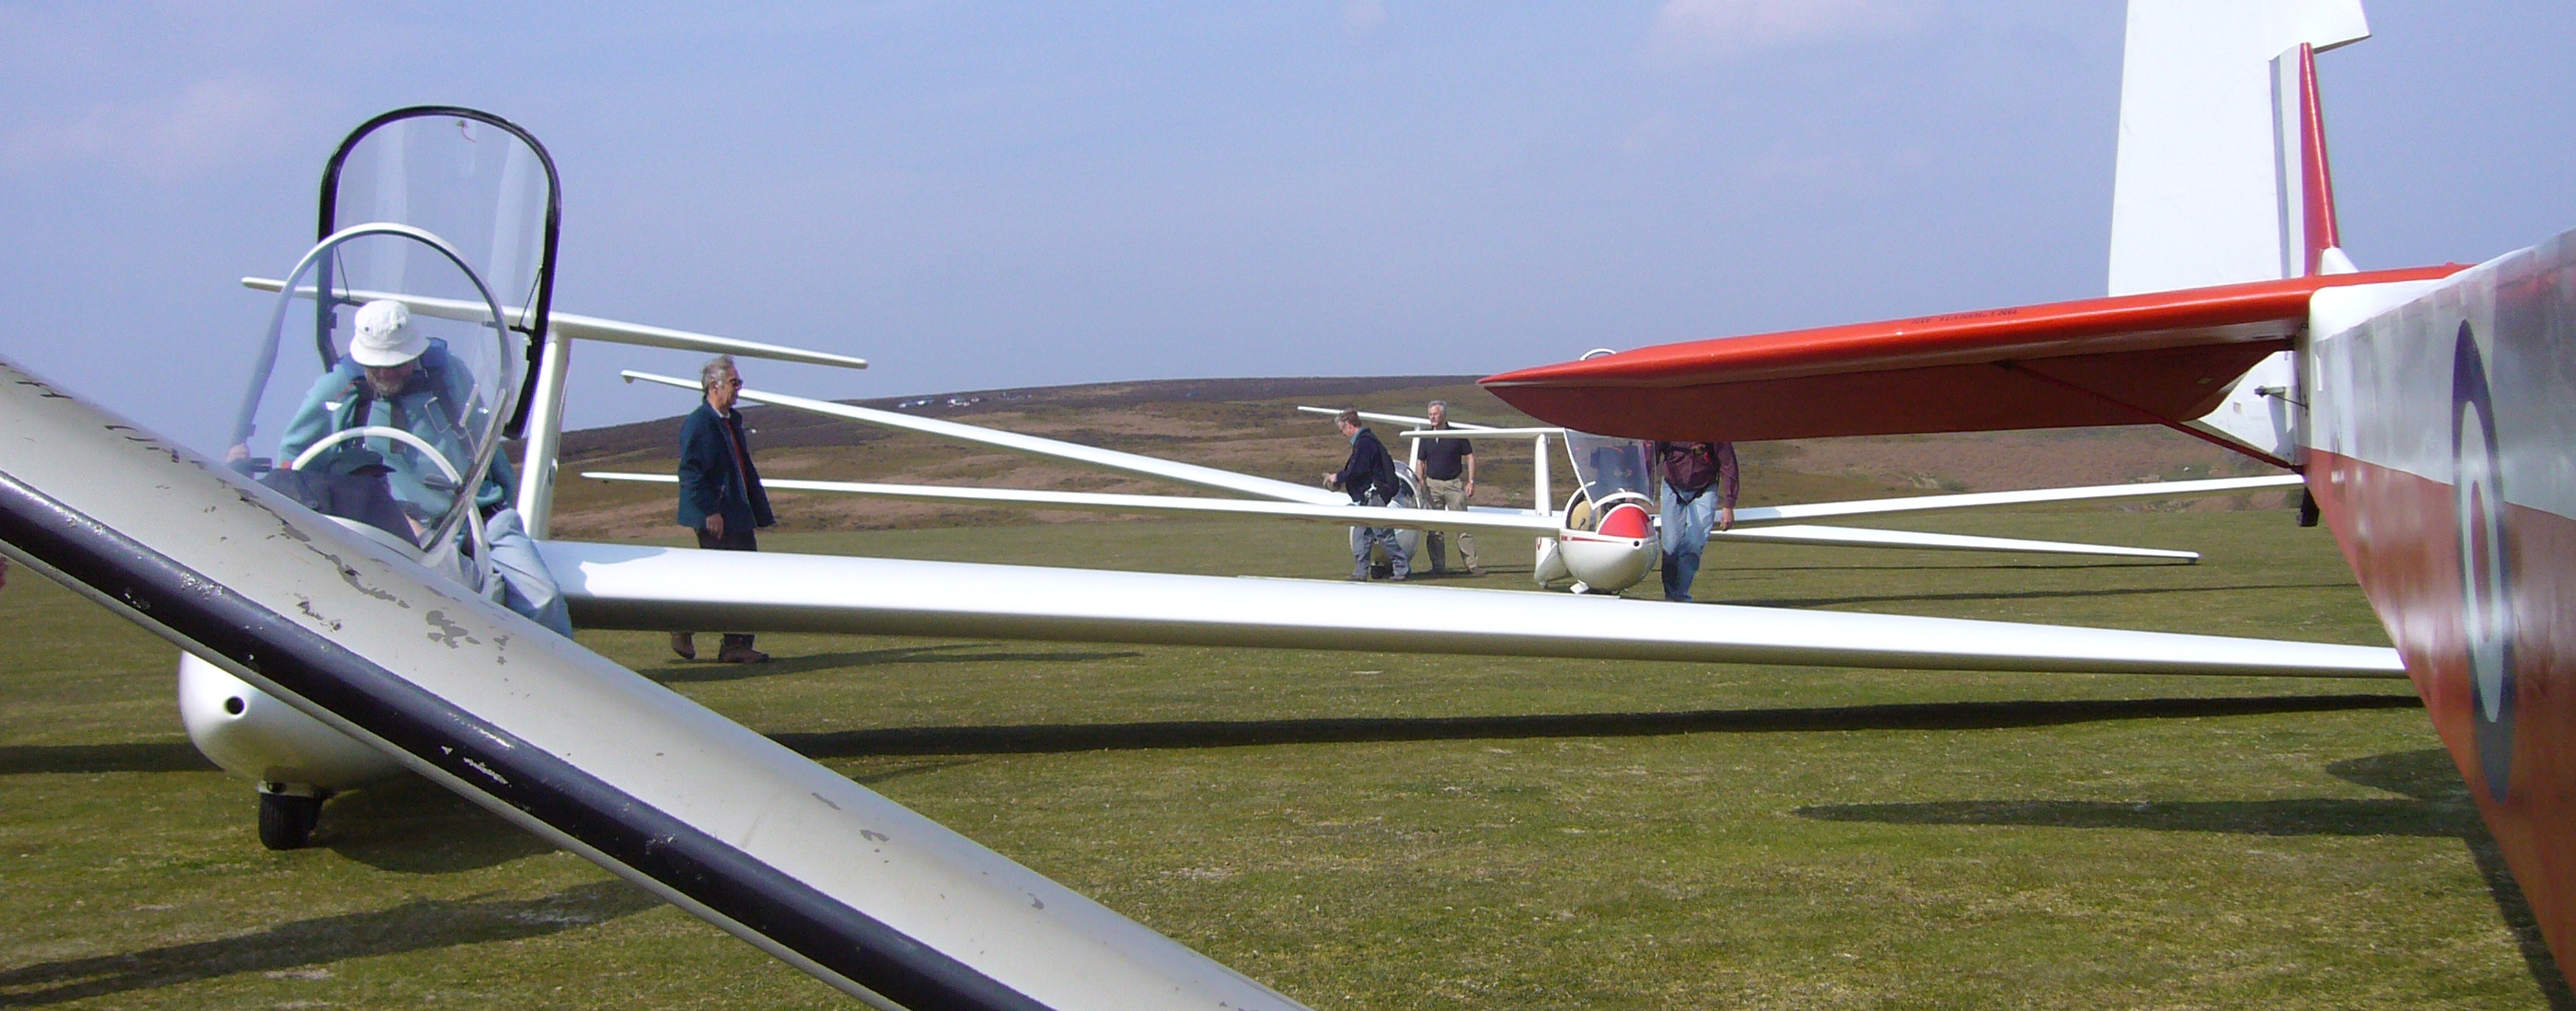 holiday couses at Midland Gliding Club